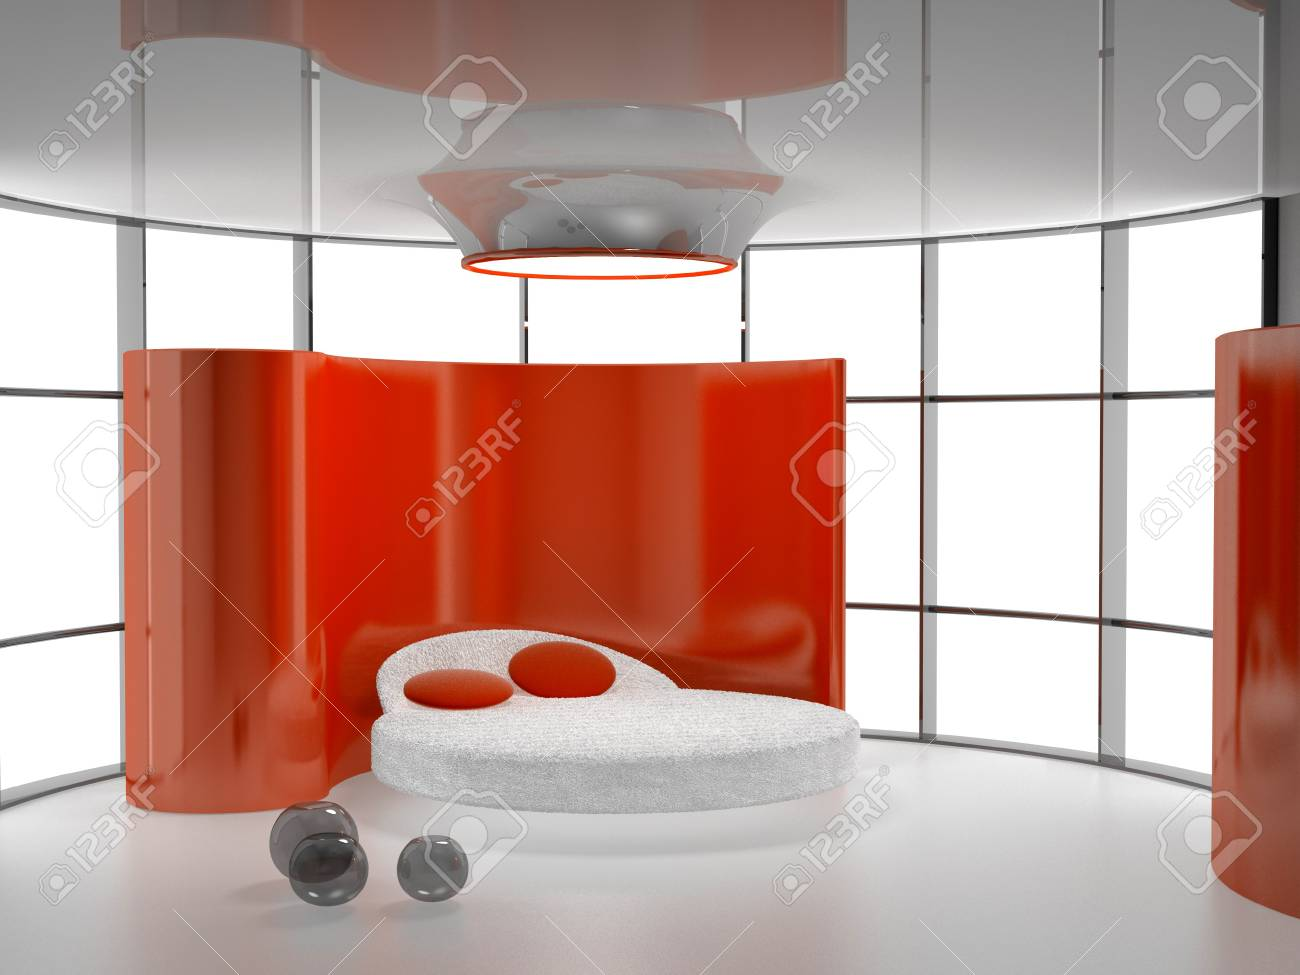 Modern interior of a bedroom room 3D Stock Photo - 8100571